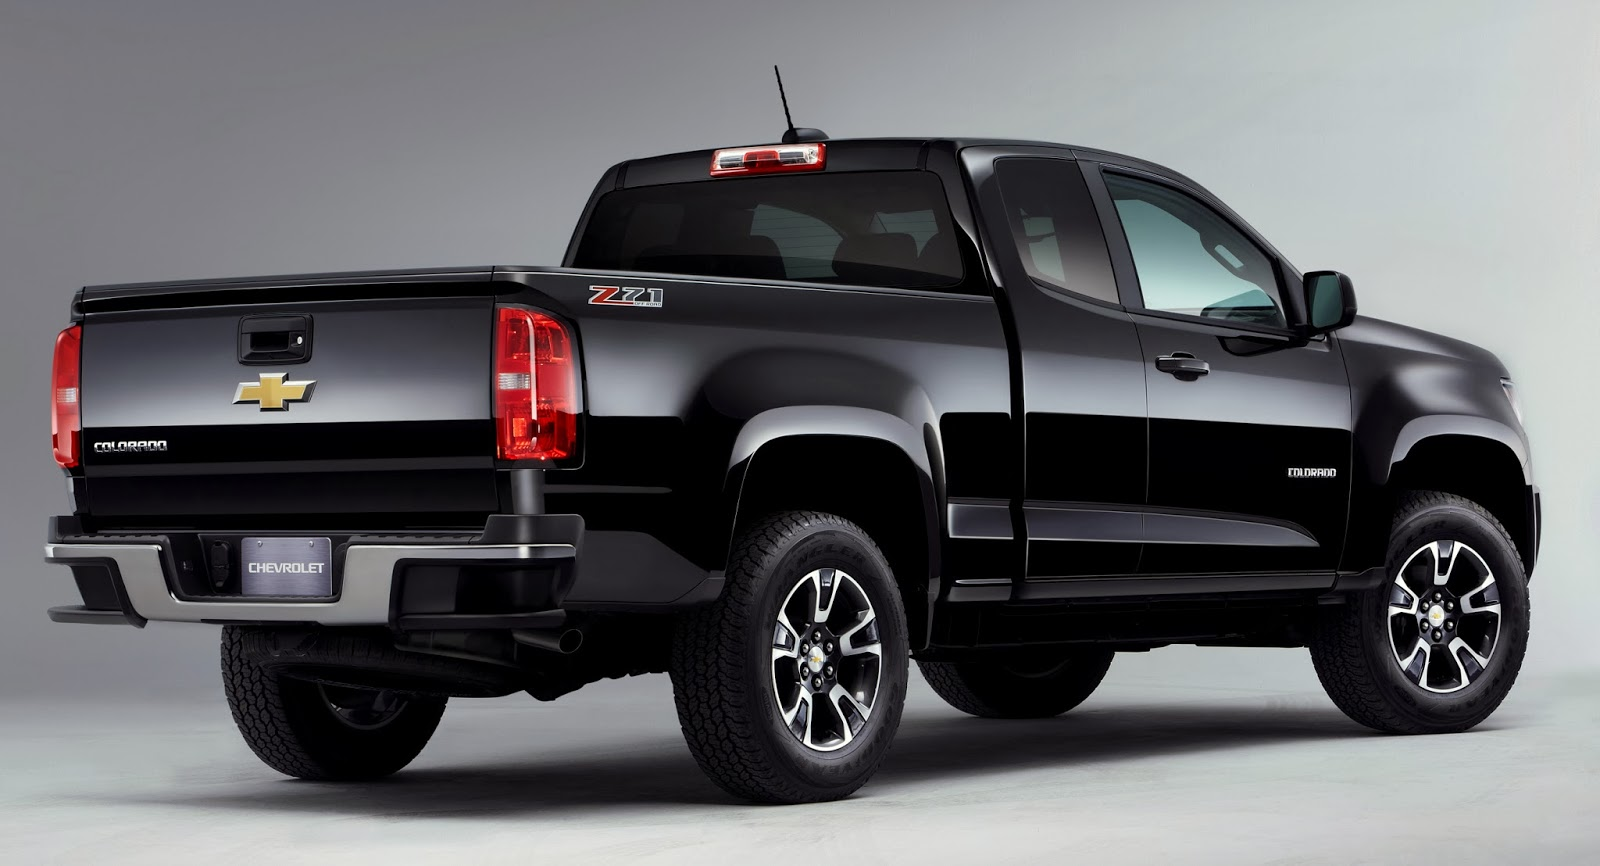 uautoknow.net: Chevrolet re-enters the mid-size truck